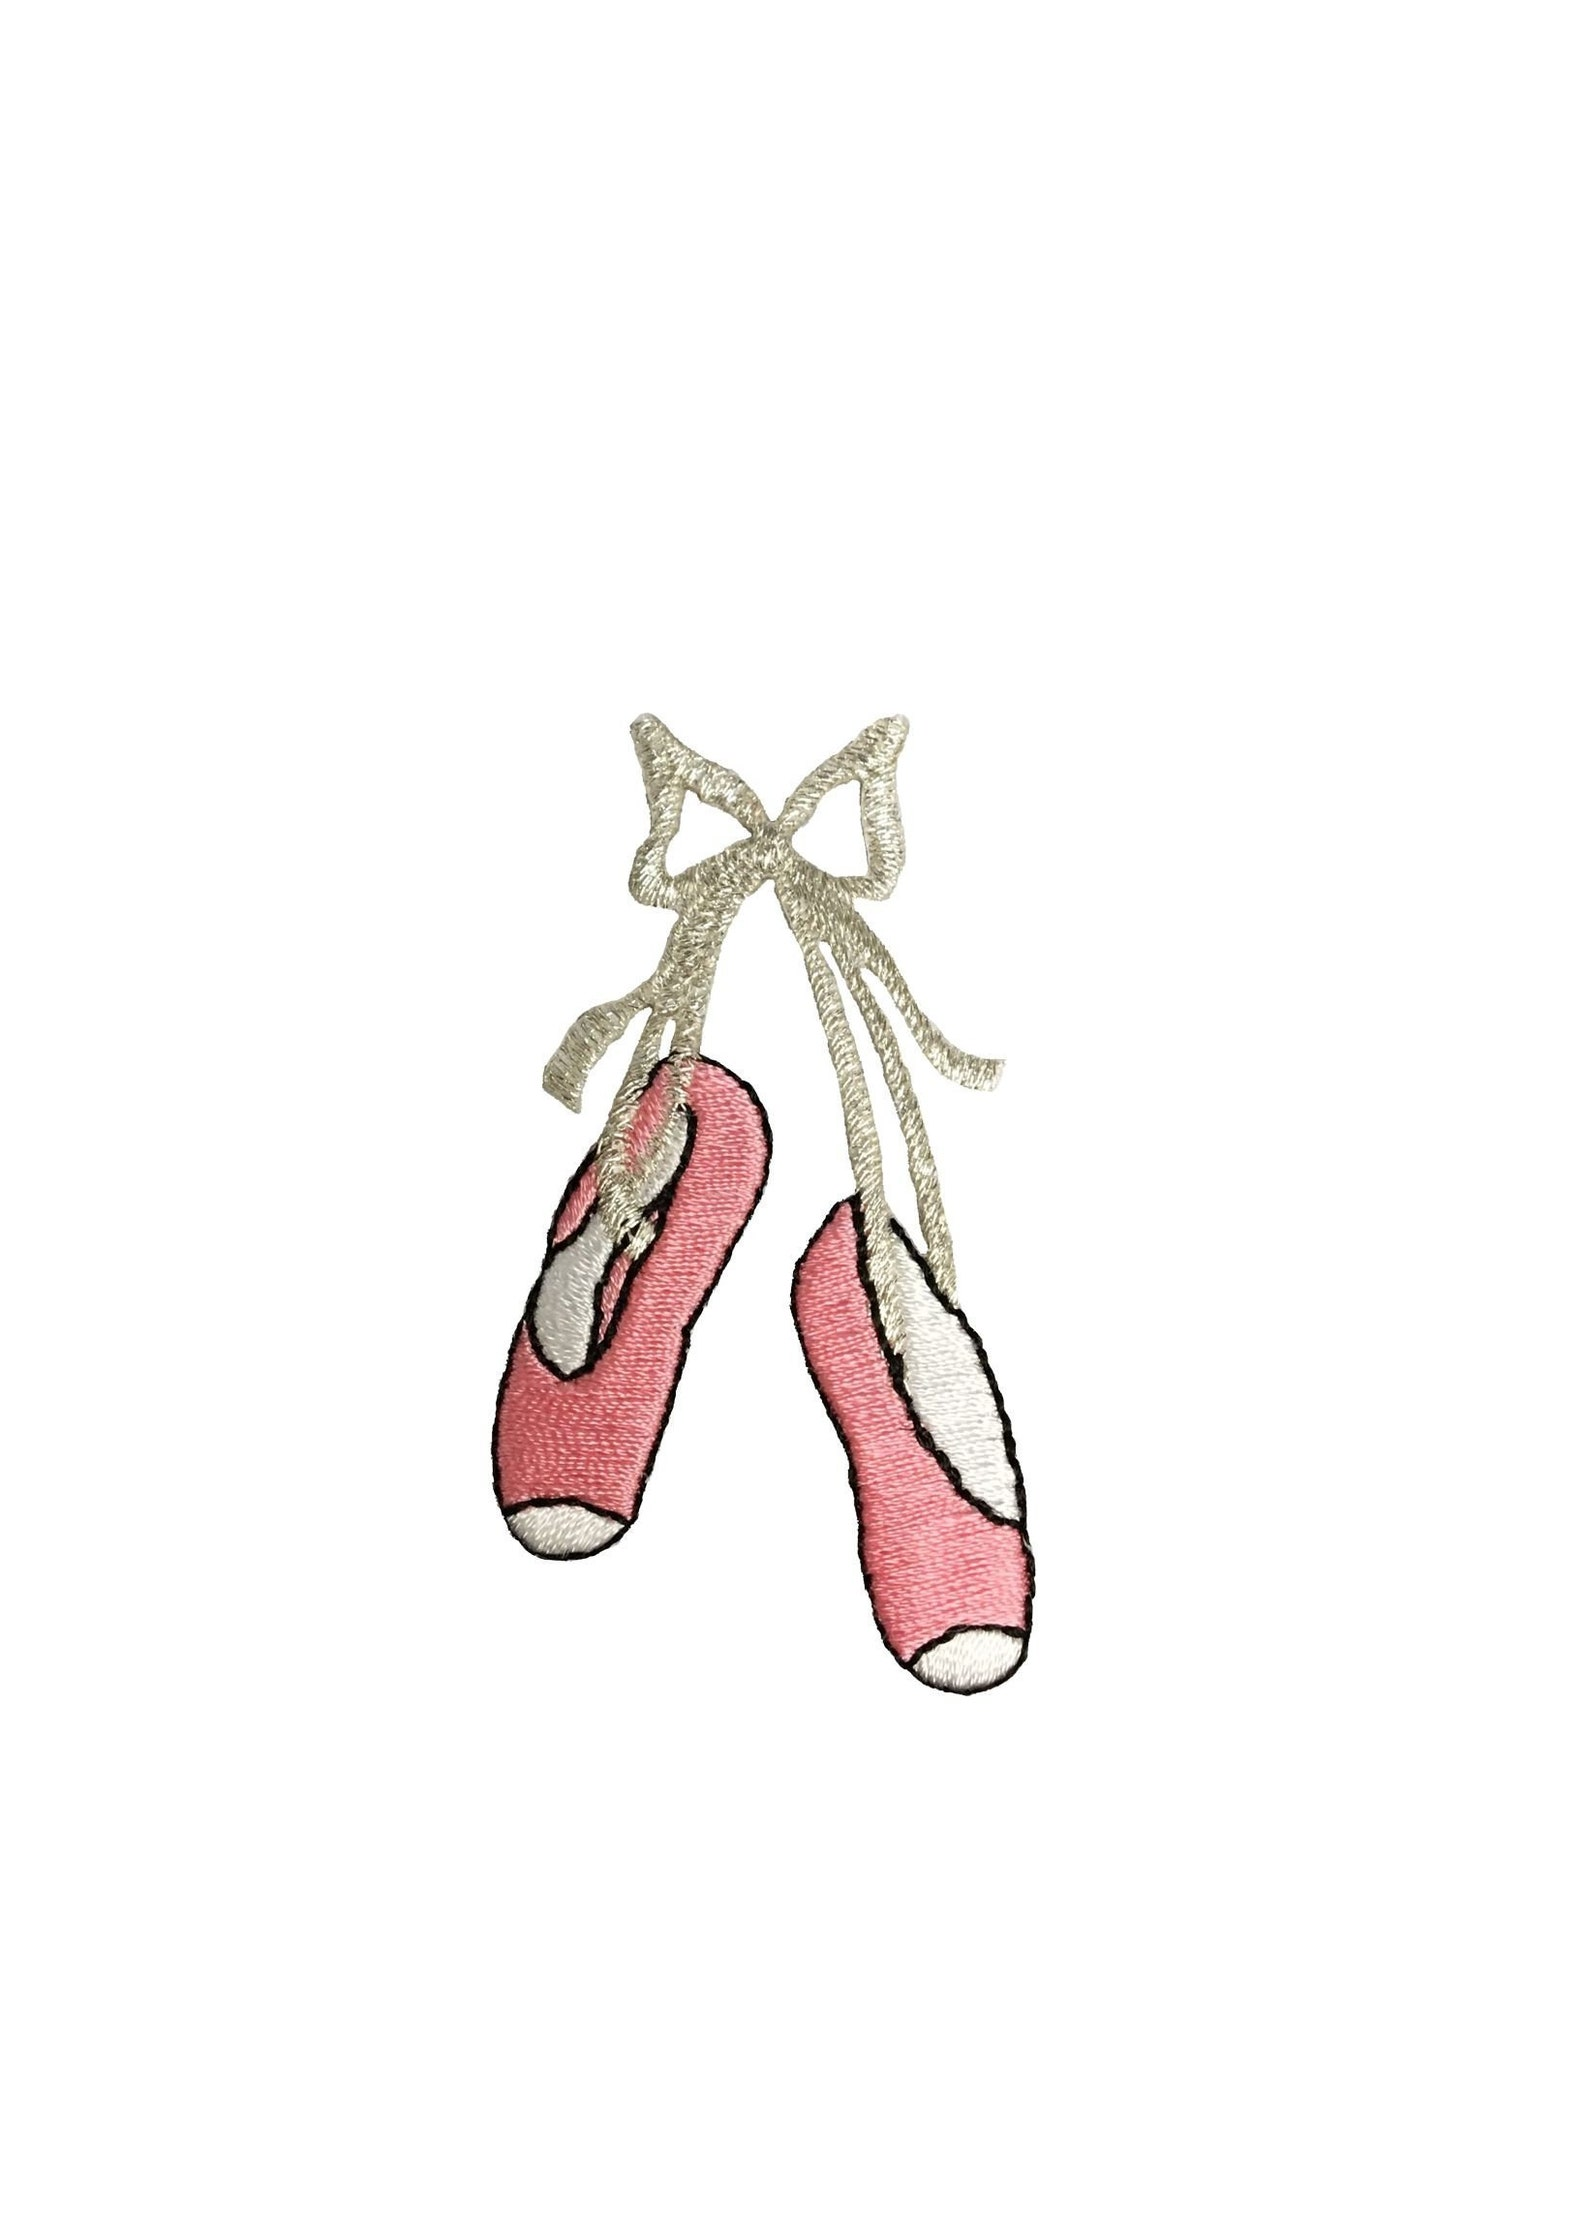 large ballet slippers - pink - silver bow - iron on applique - embroidered patch